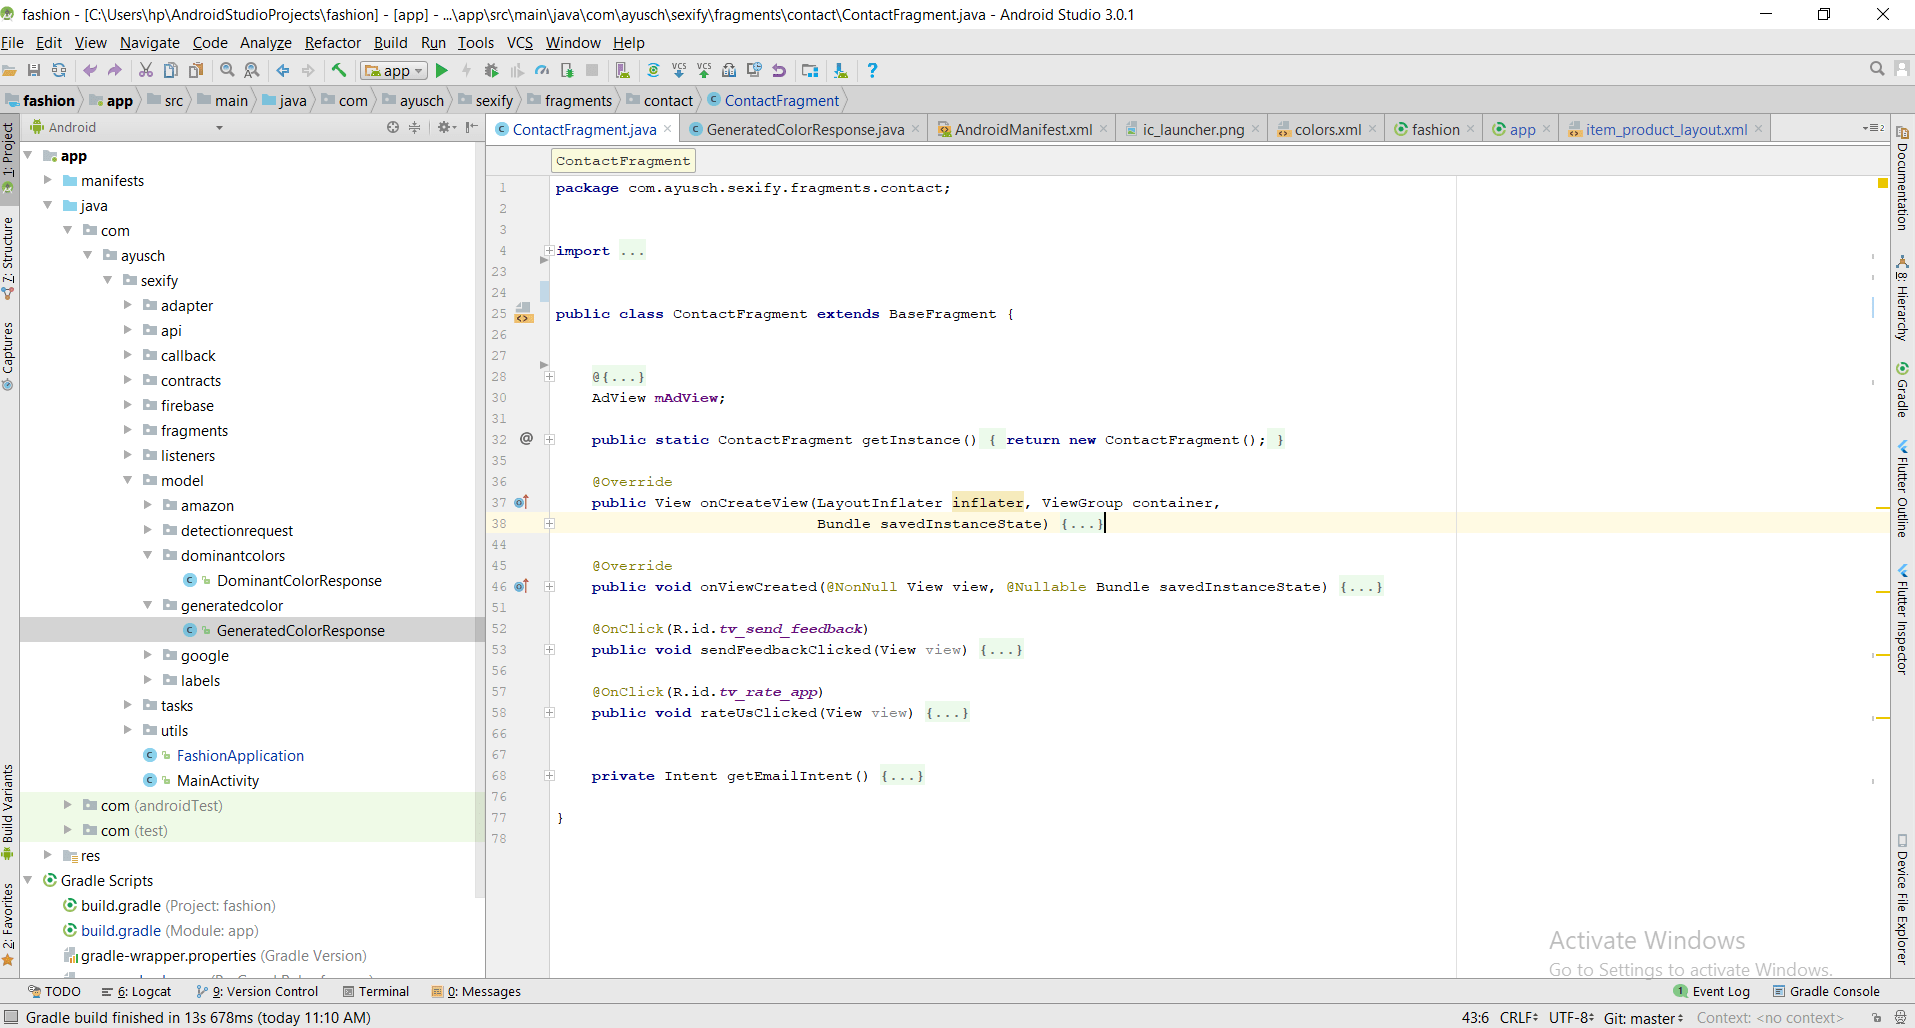 Collapse/Expand Android Studio Shortcut